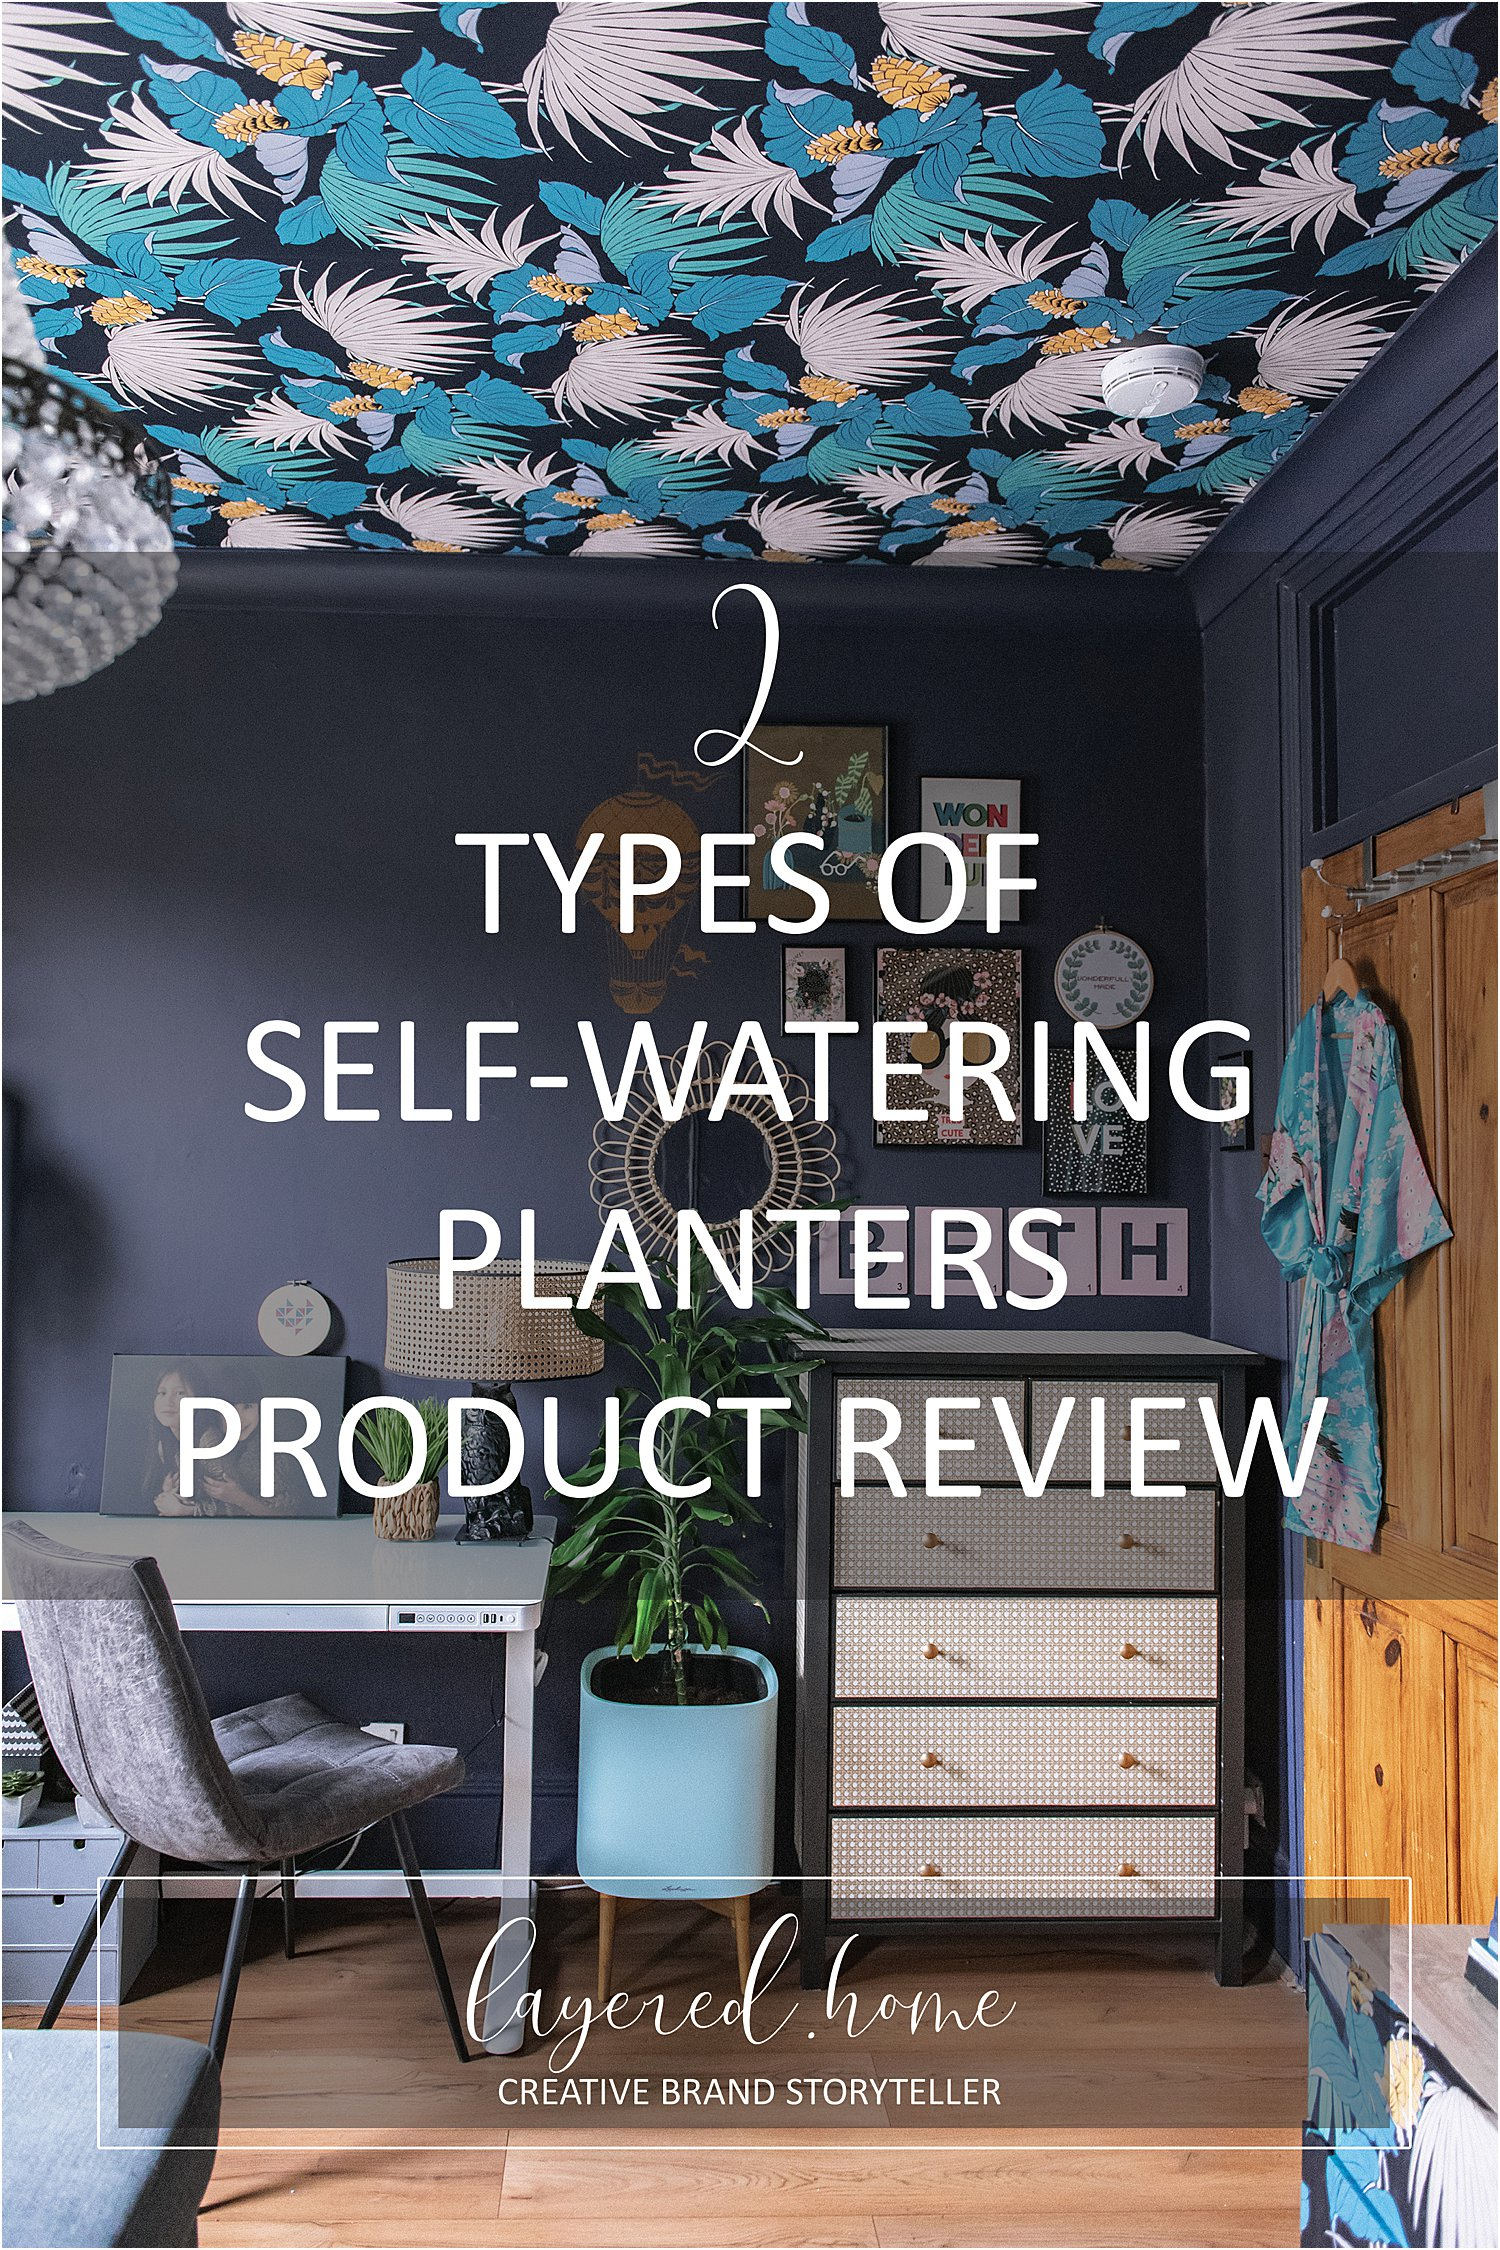 2-types-self-watering-planters-lechuza-pon-product-review